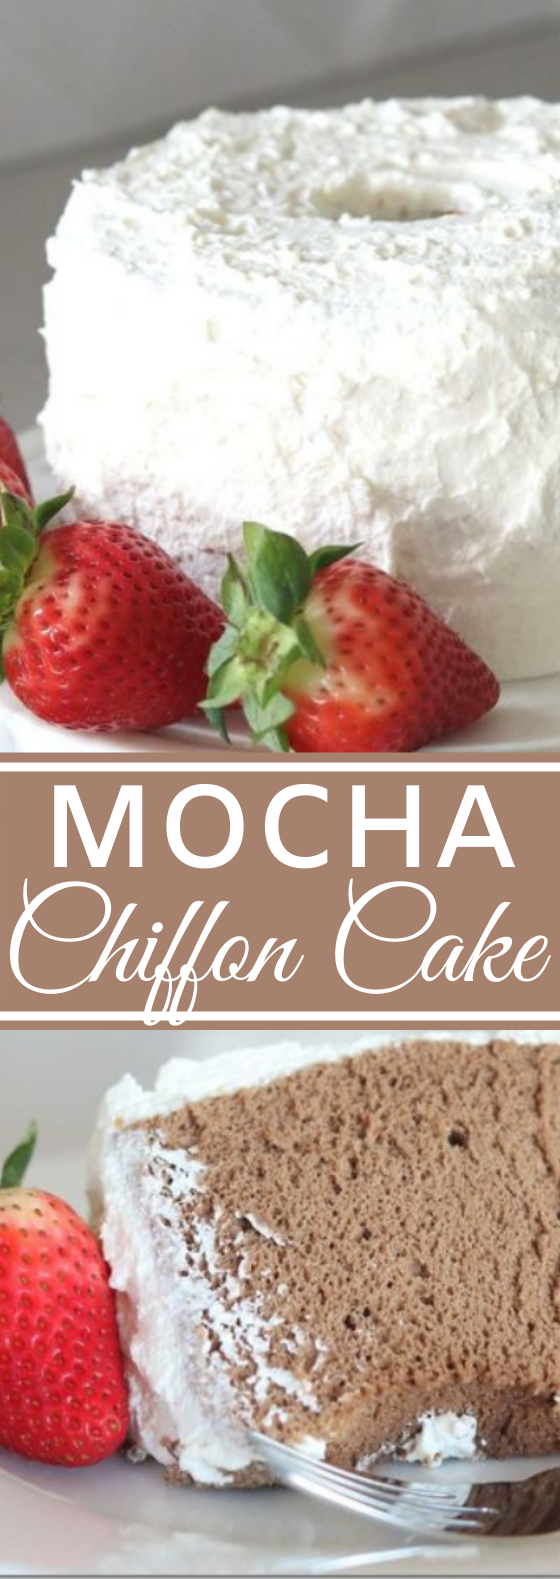 Mocha Chiffon Cake #desserts #cake #recipes #easy #birthdaycake